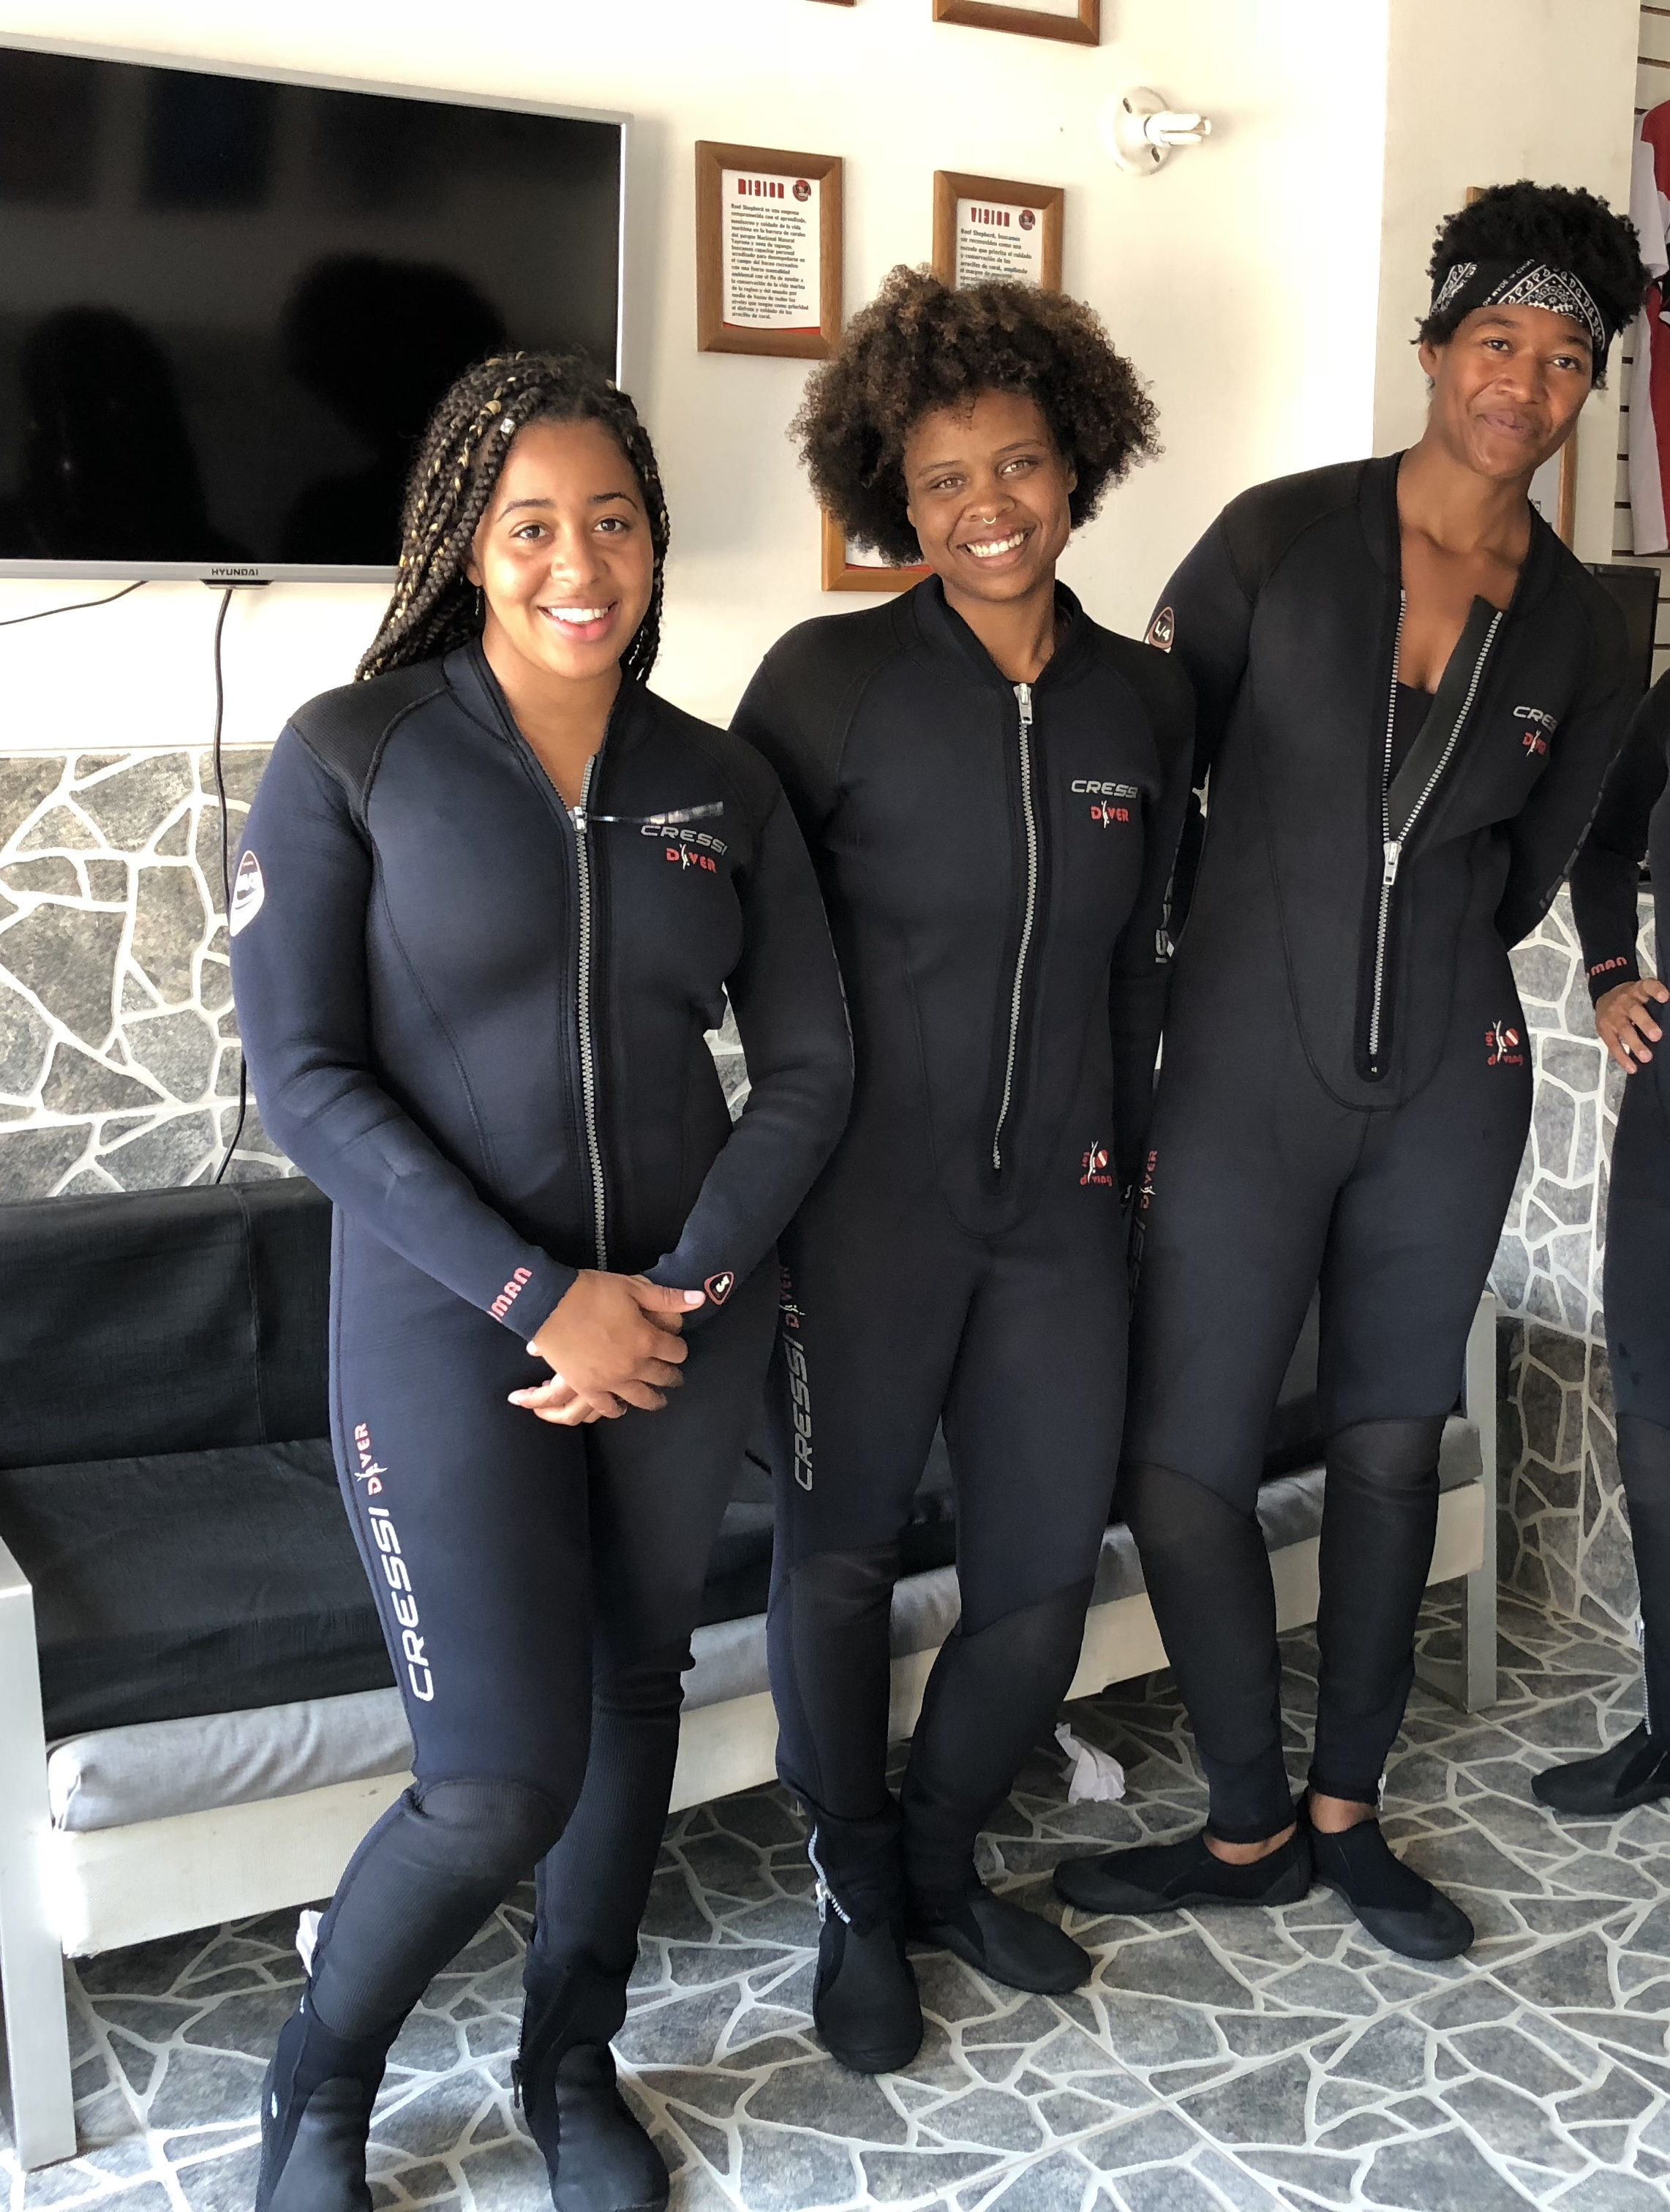 Suited up on our first day of scuba school